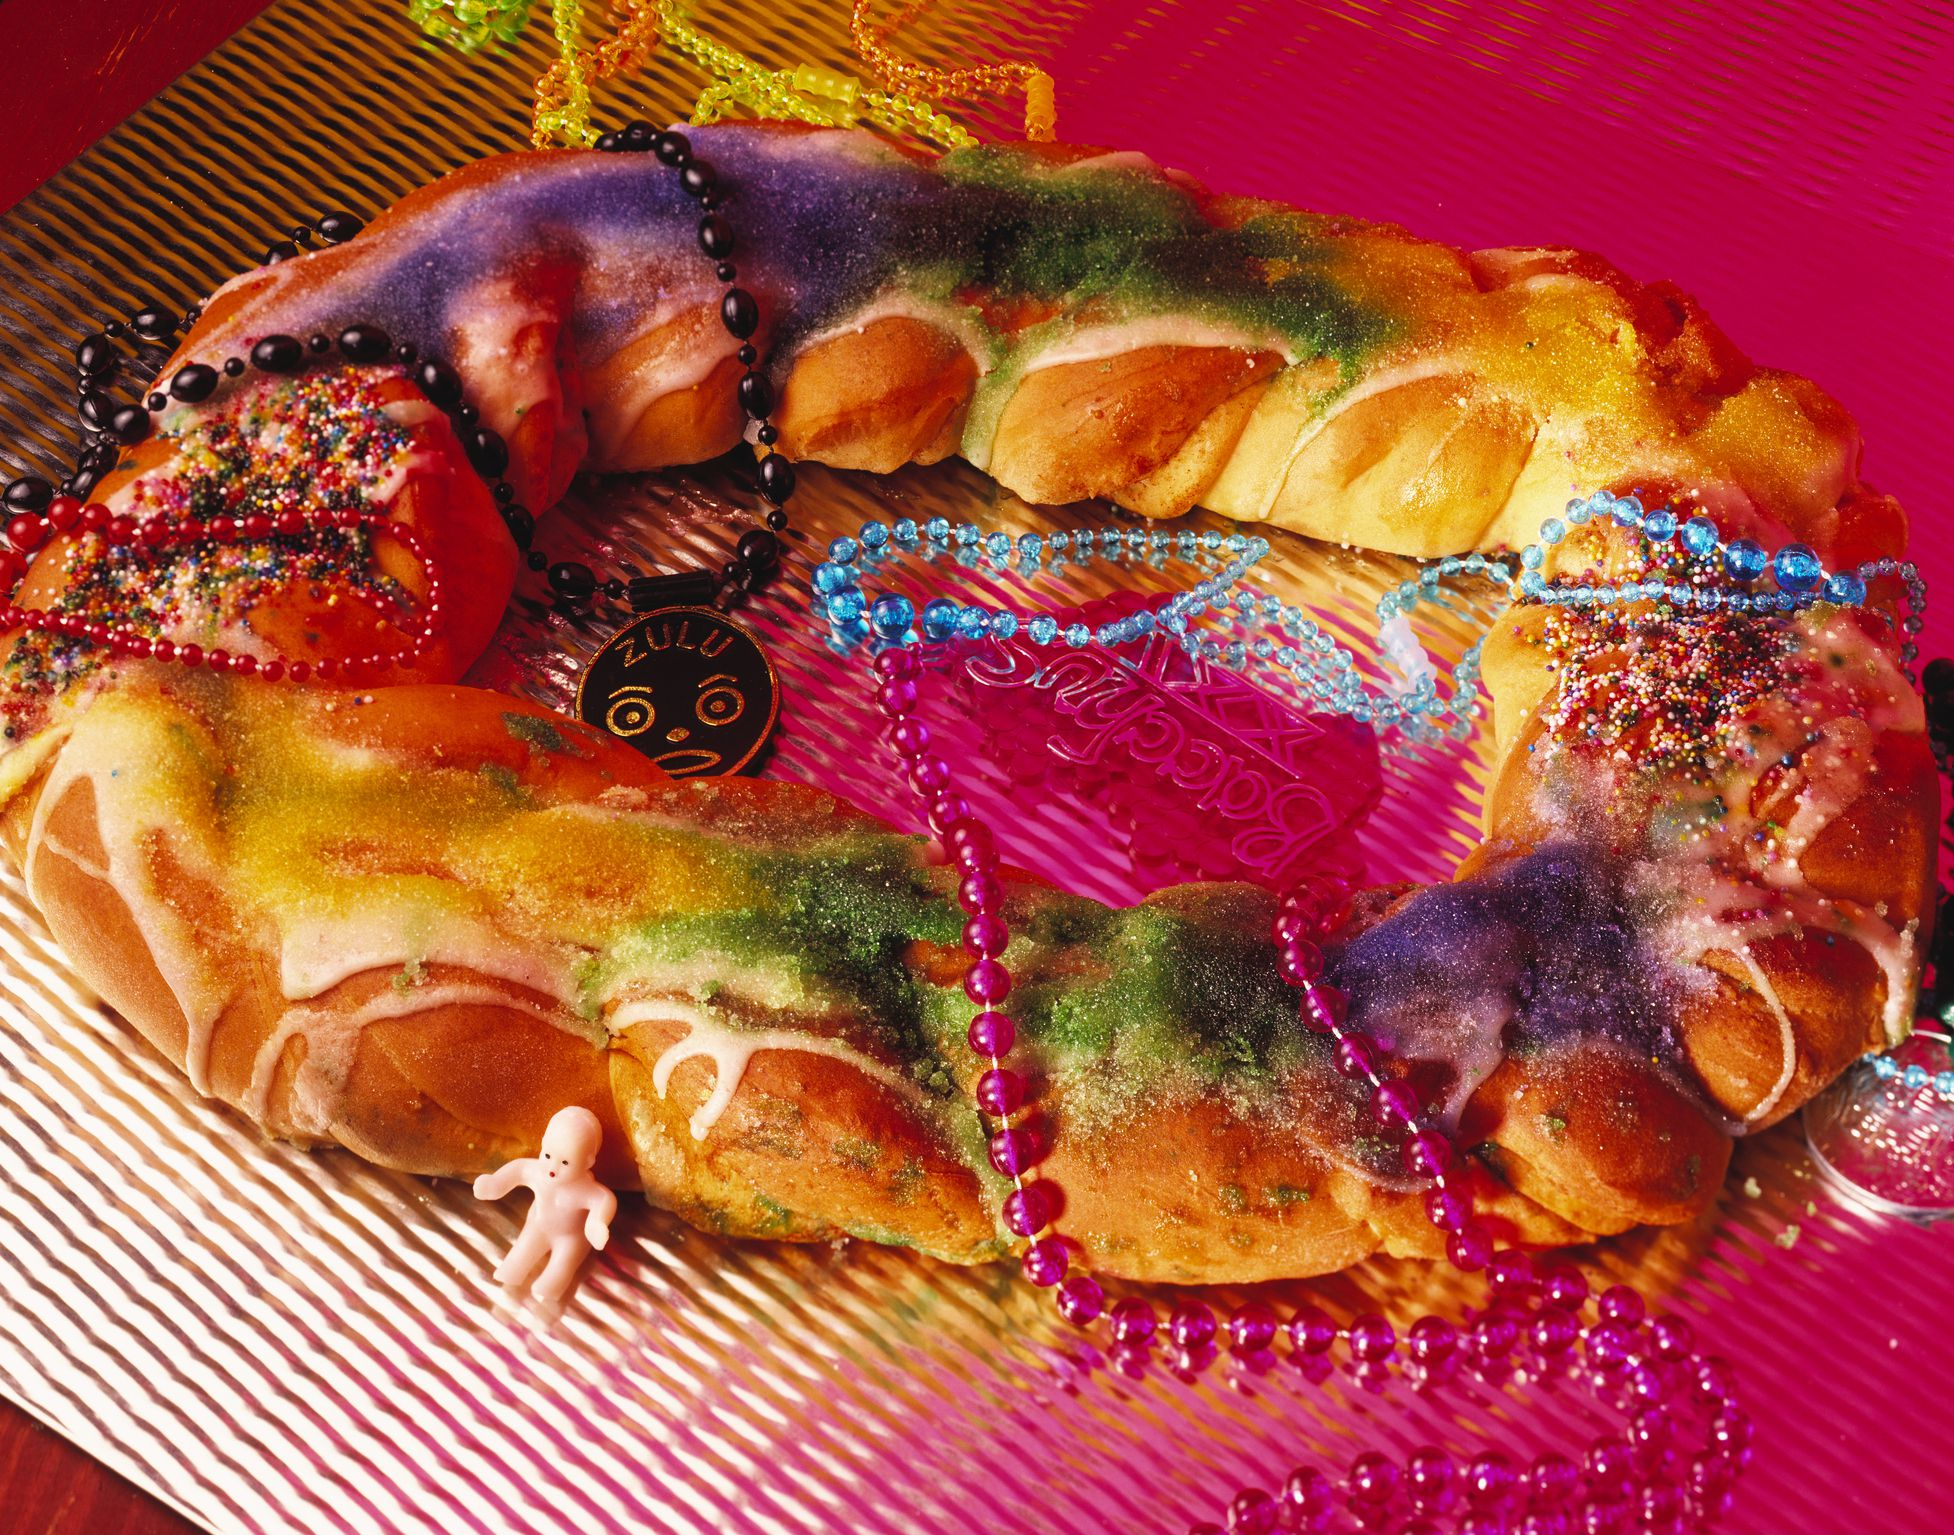 mardi gras baby cake vegan king cake for mardi gras recipe 5706